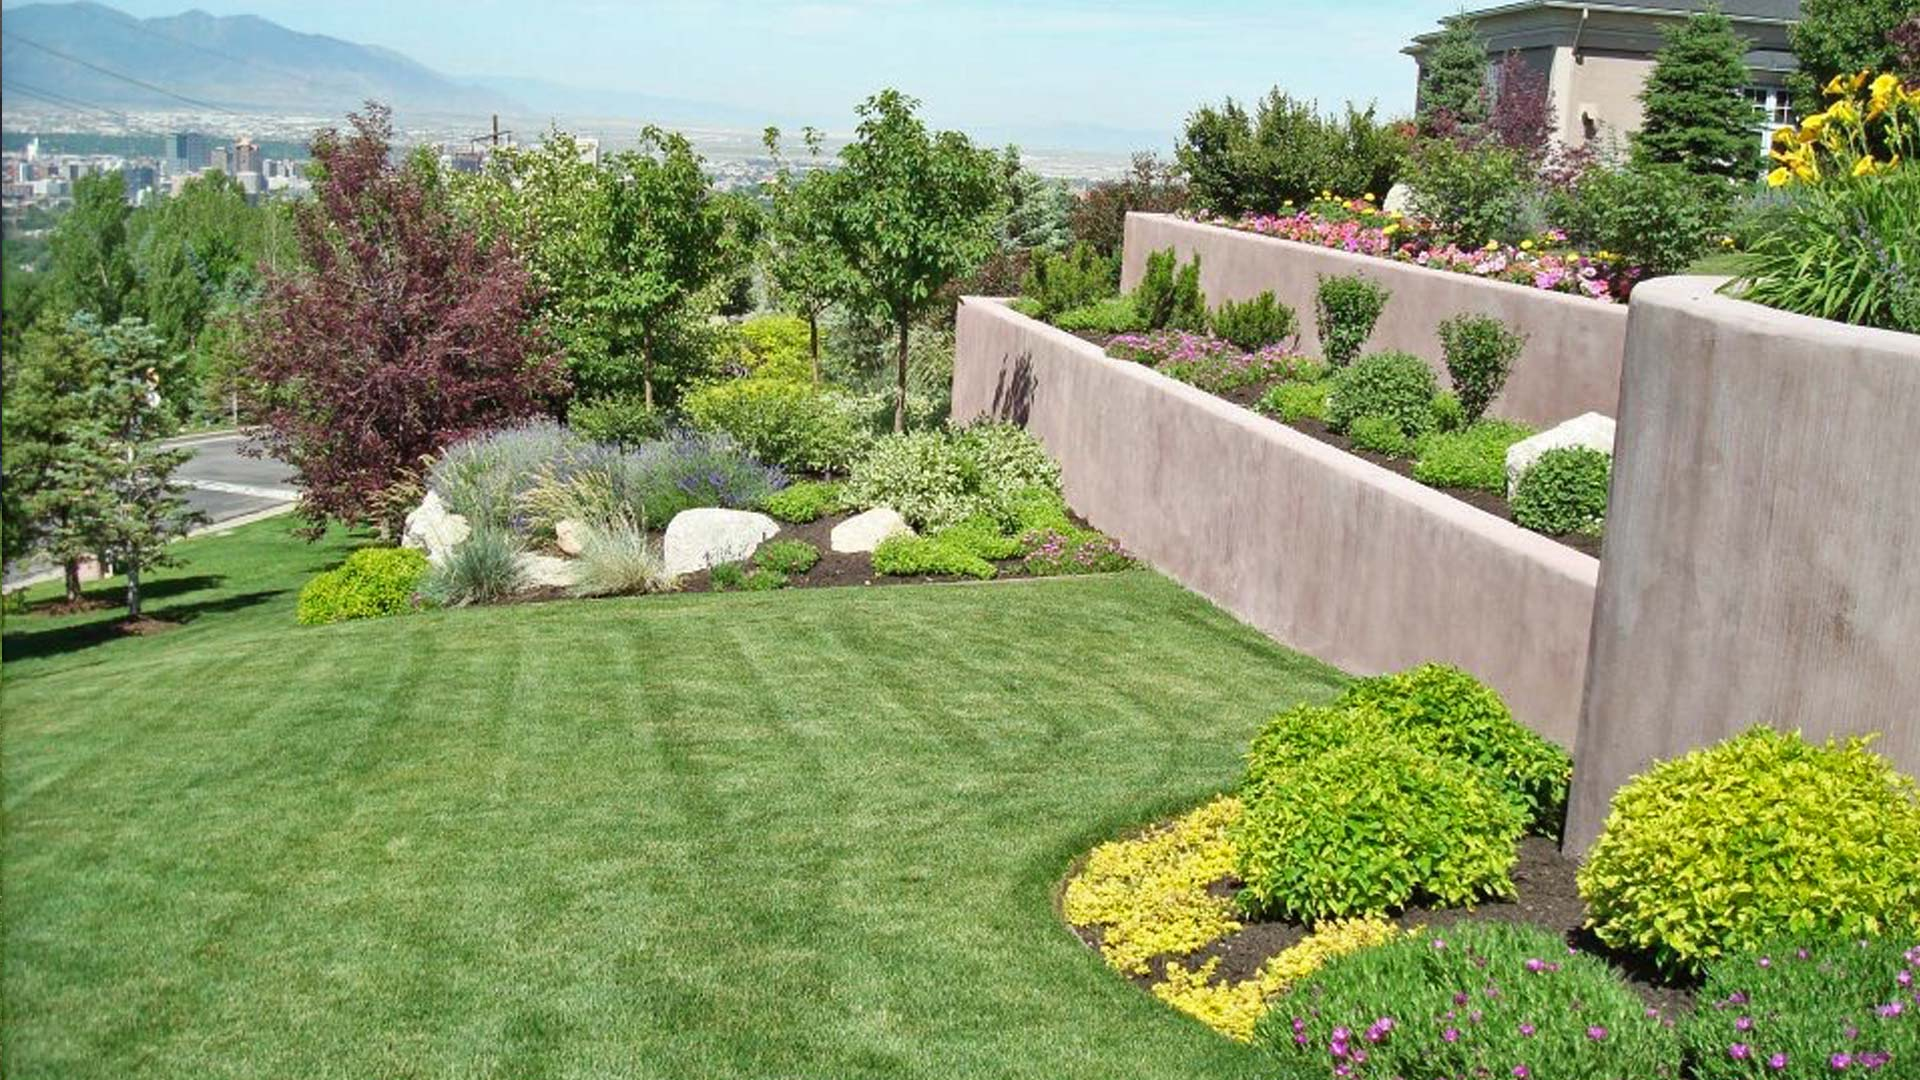 Lawn mowing stripes and meticulously maintained landscaping at a property located in Draper.